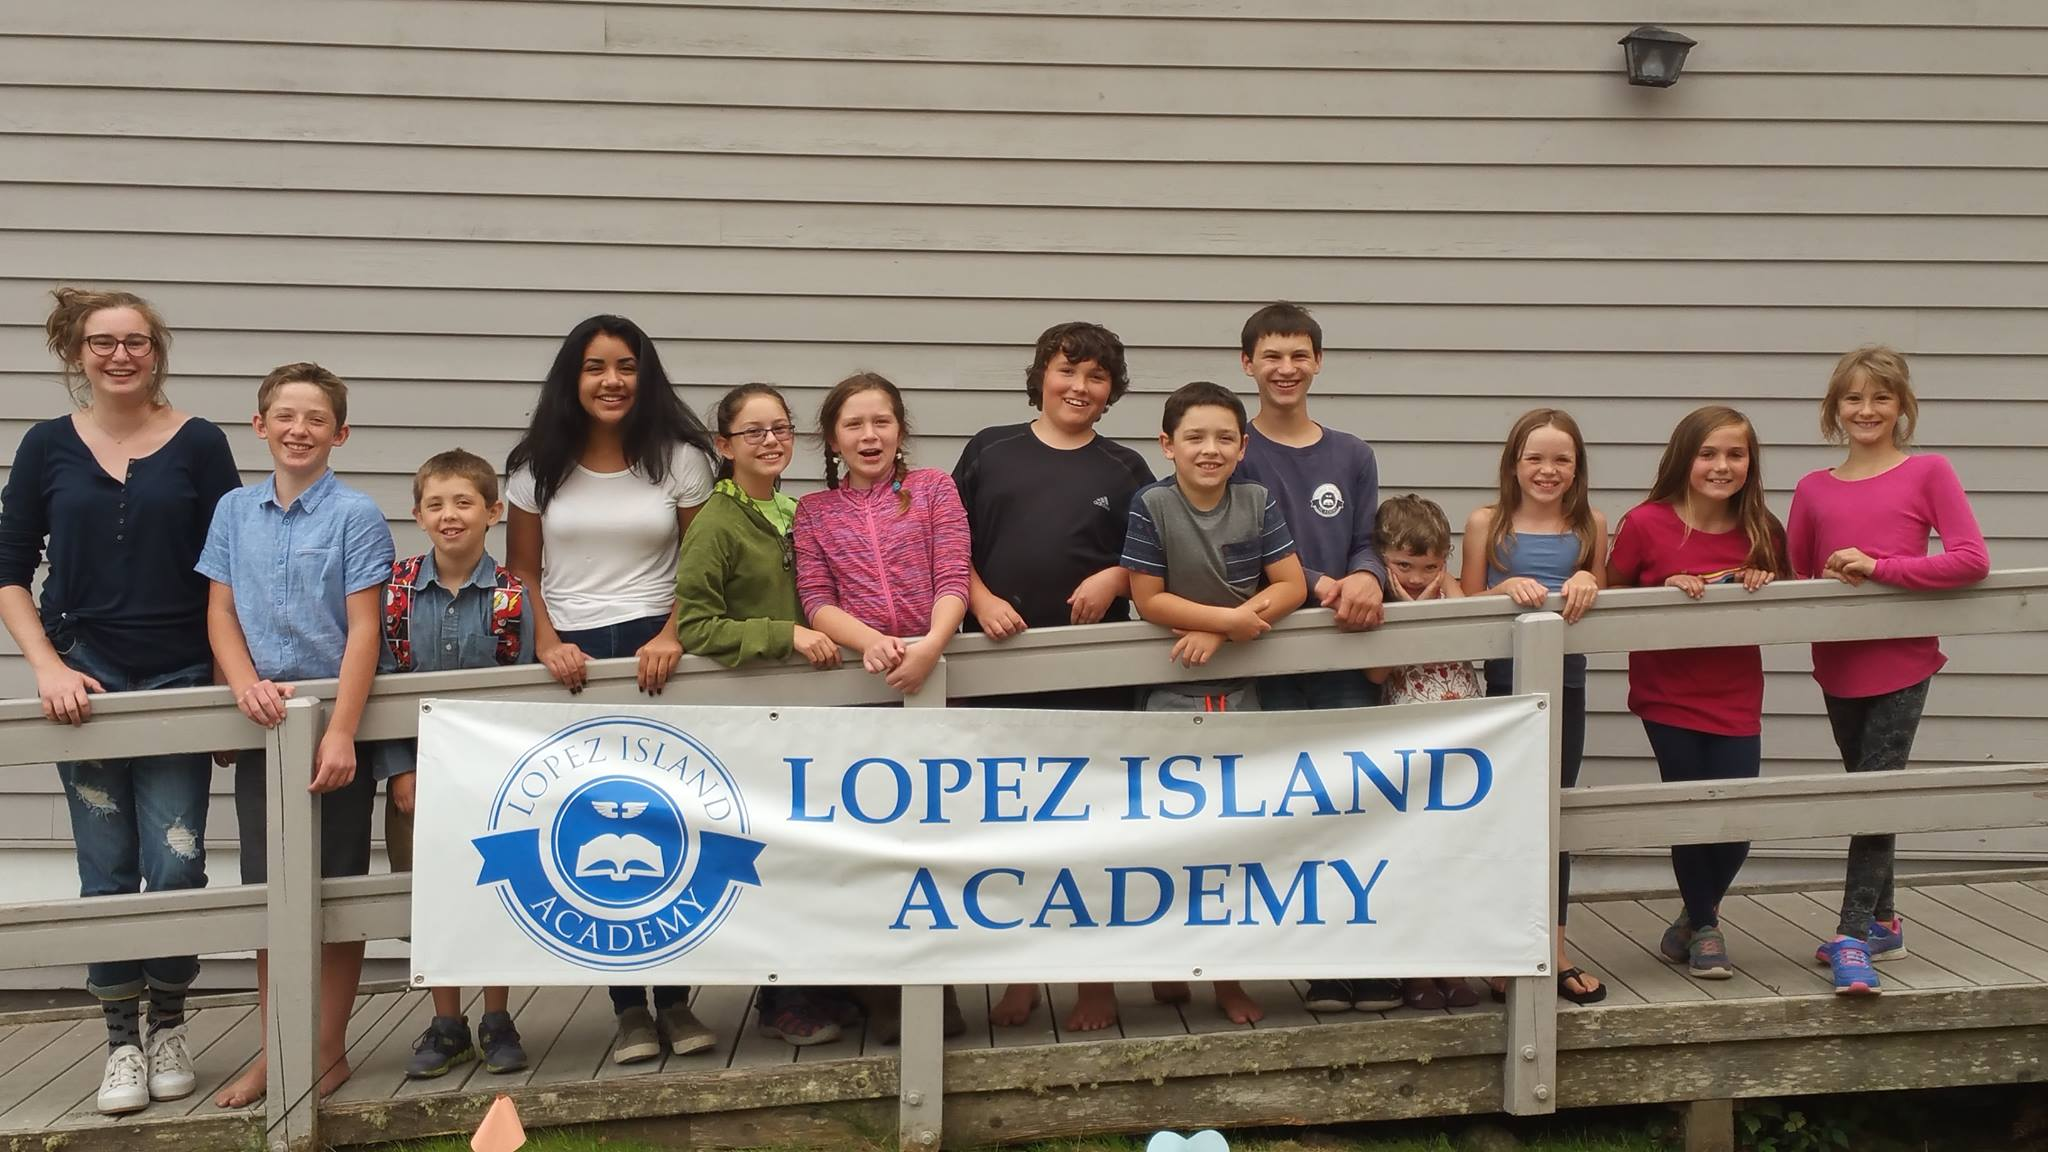 education school christian private lopez island academy elementary middle school